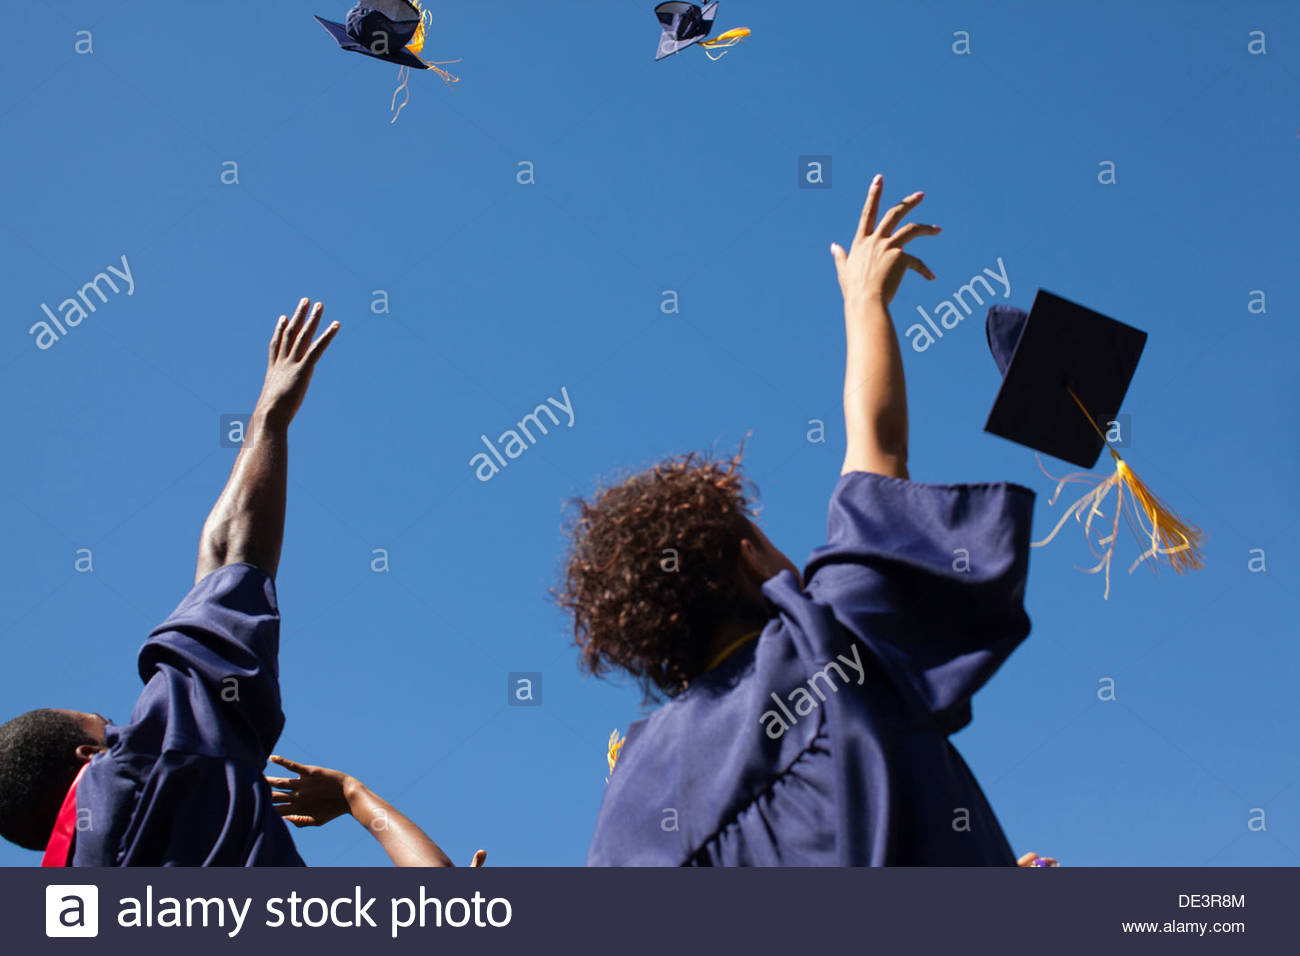 Graduates throwing caps dans l'air extérieur Photo Stock